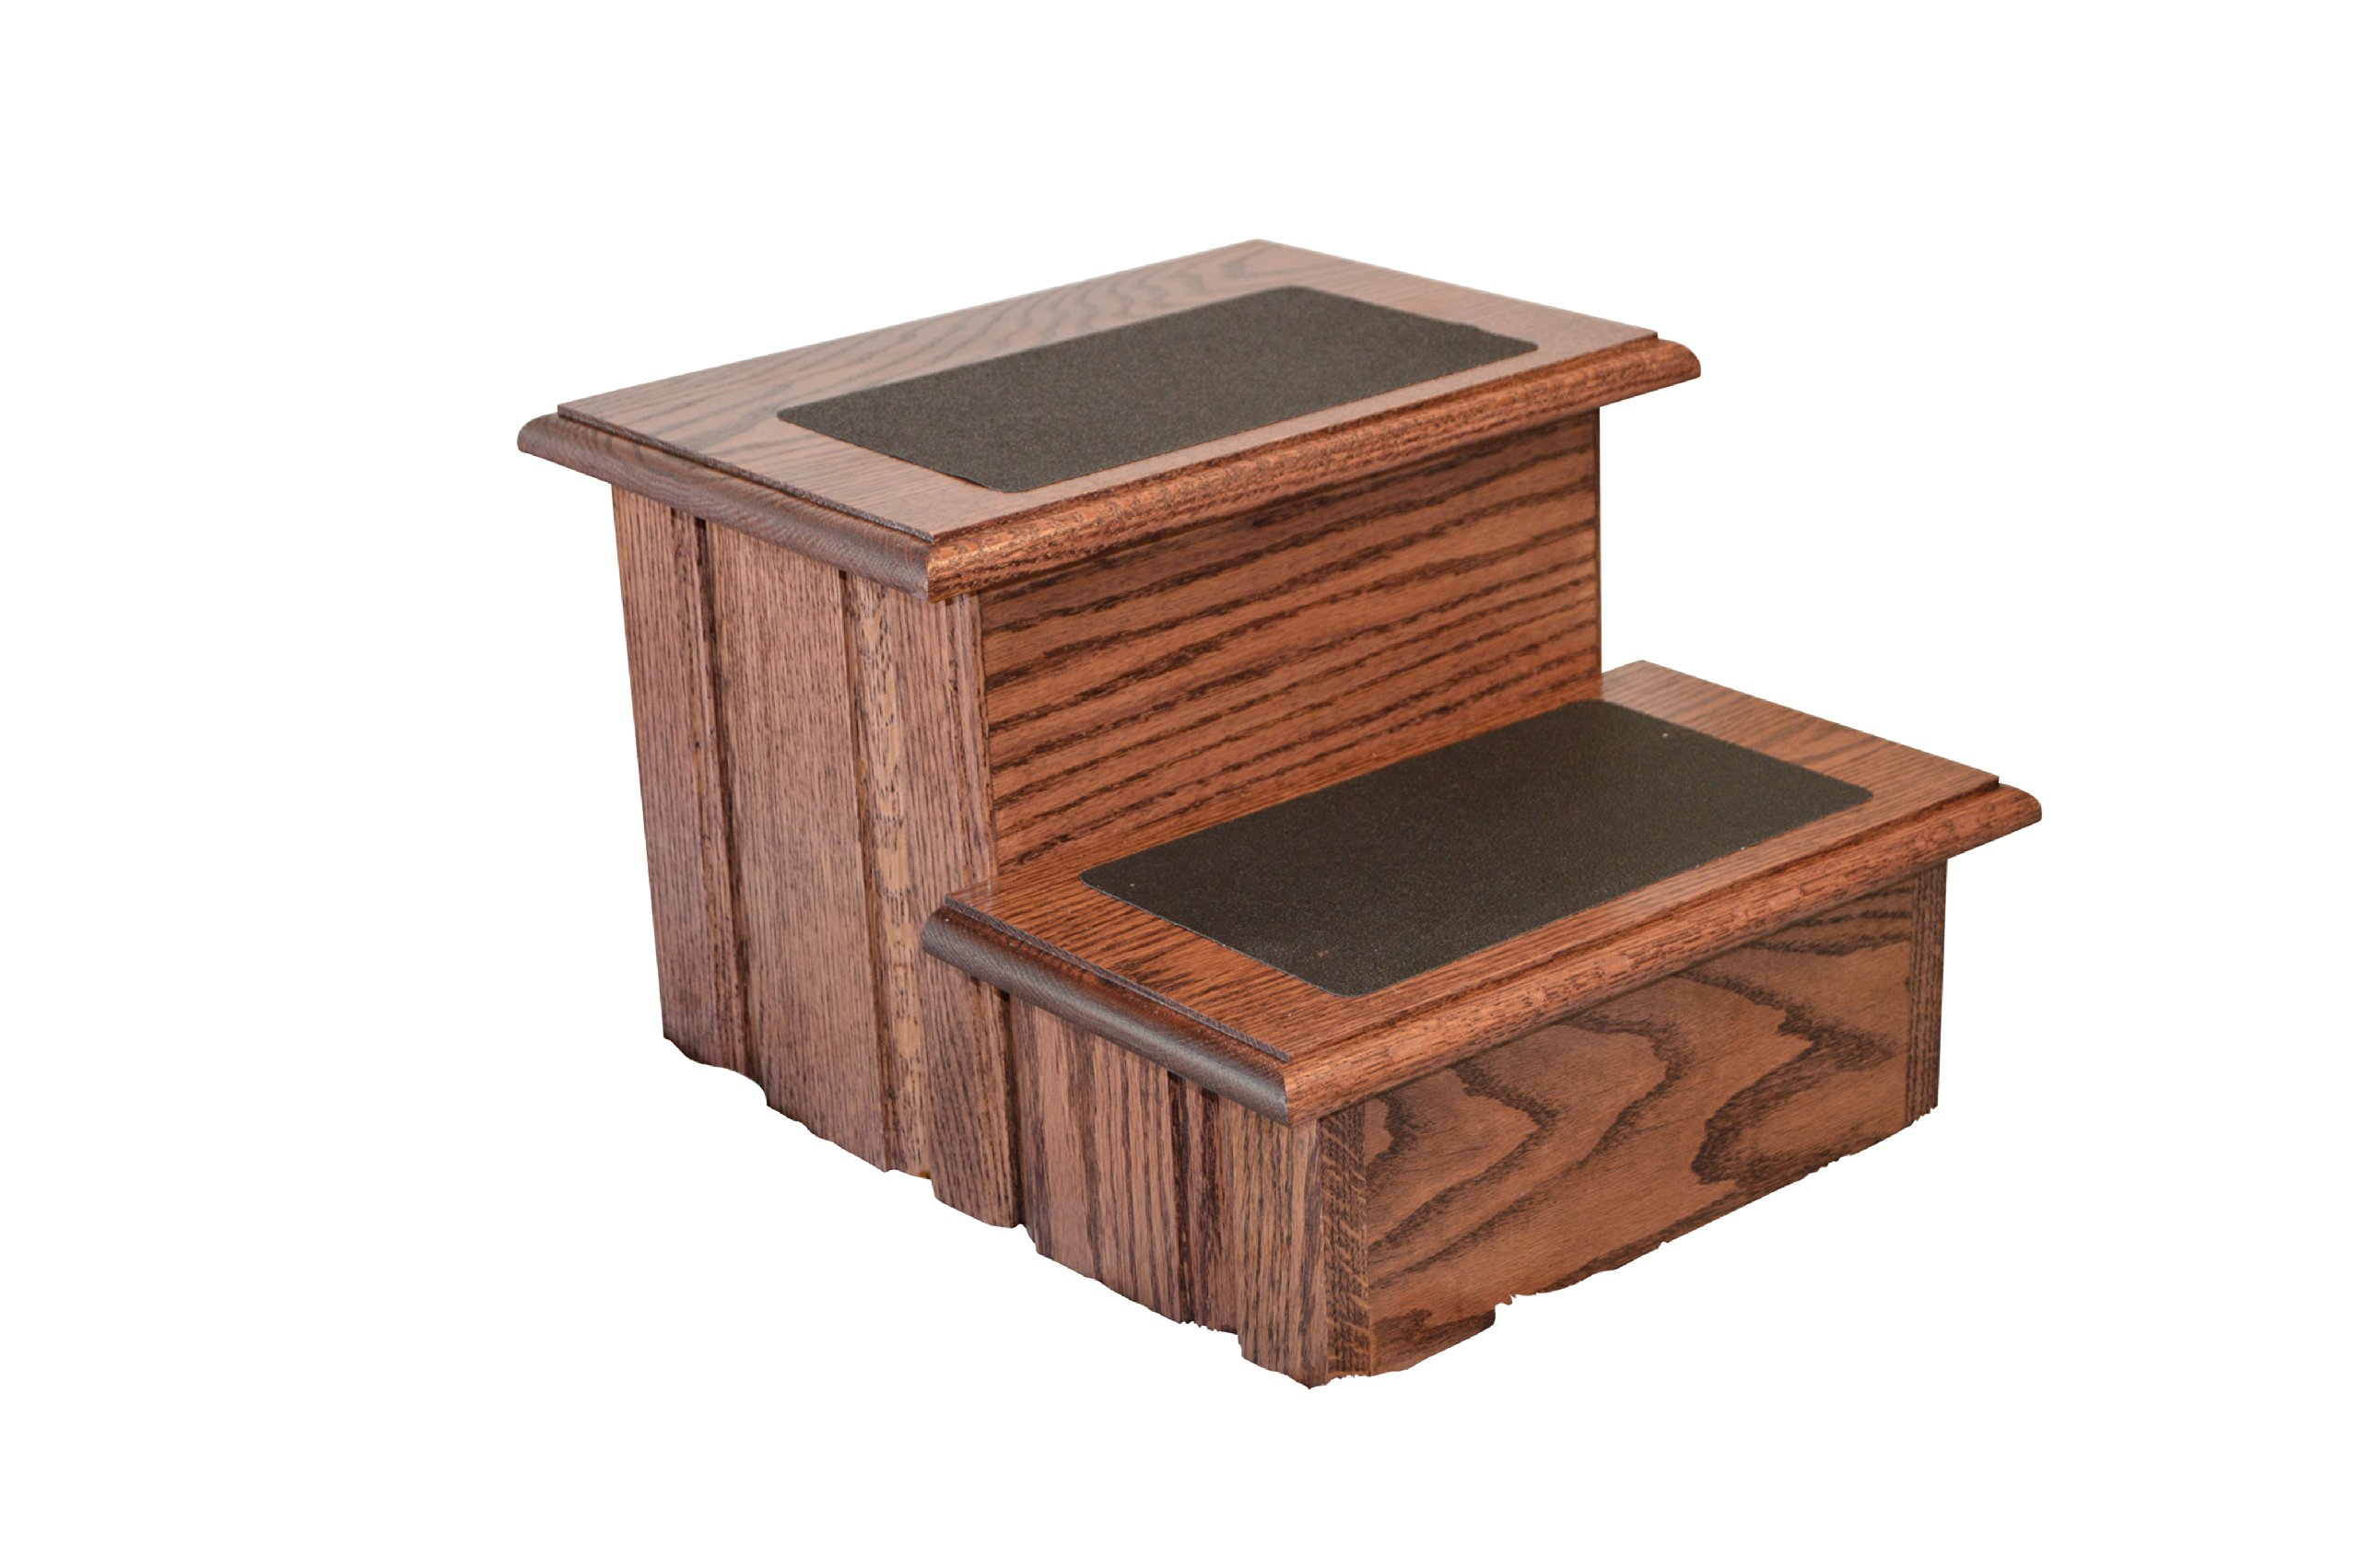 Rich Cherry Finished Solid Oak Step Stool With Non Slip Tread 11 ½'' Tall